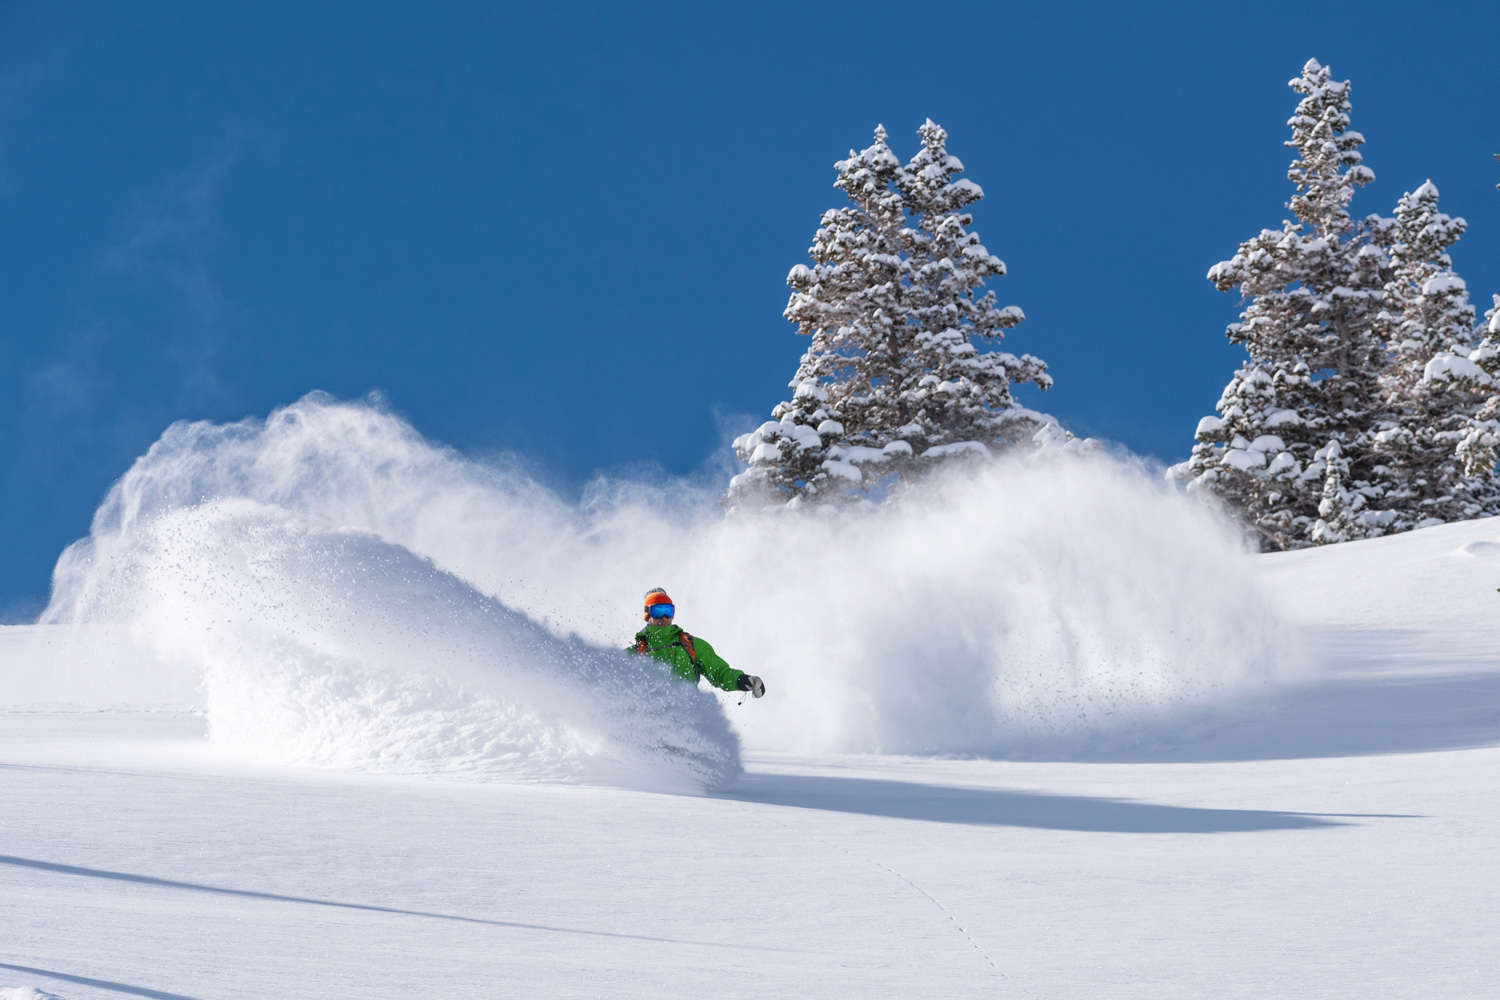 snowboarder making deep powder turns